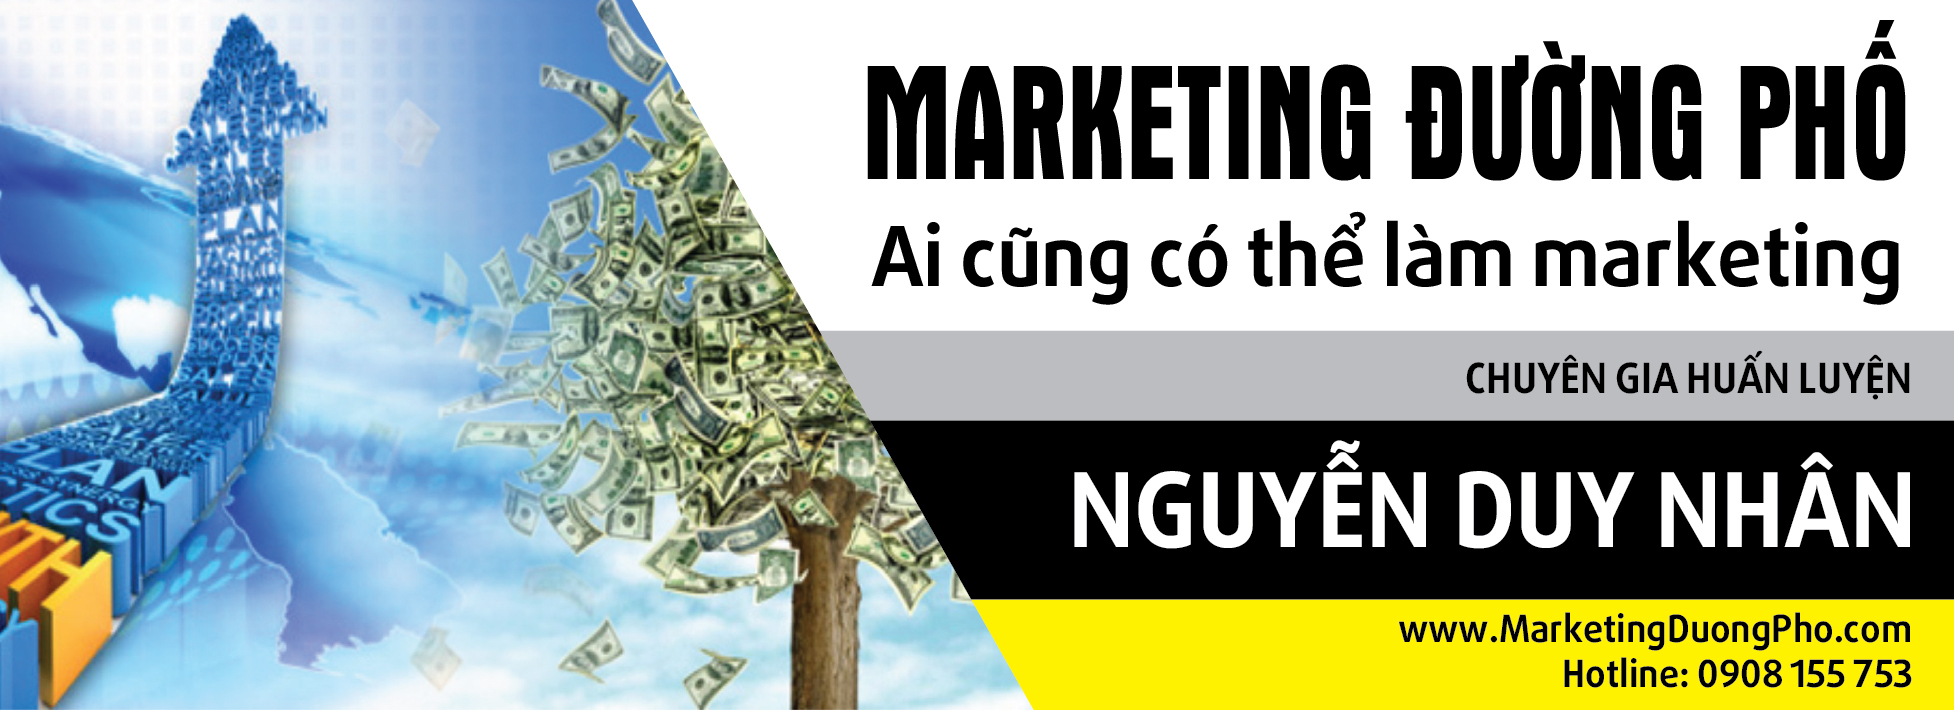 marketing duong pho